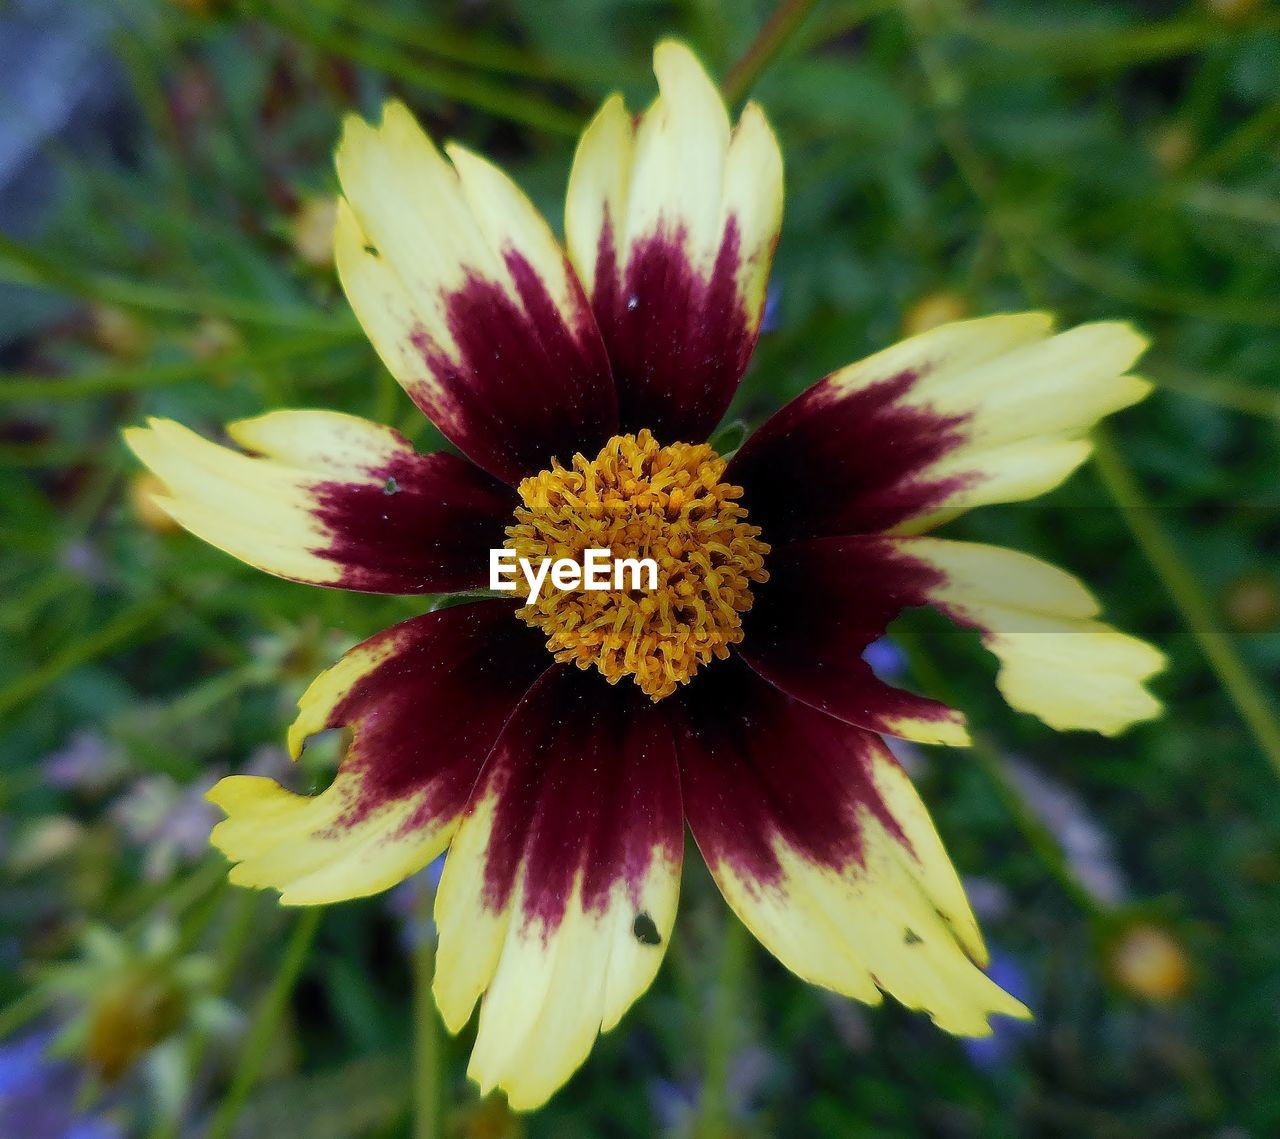 flower, fragility, petal, nature, growth, beauty in nature, flower head, plant, freshness, close-up, yellow, red, outdoors, no people, day, blooming, soft focus